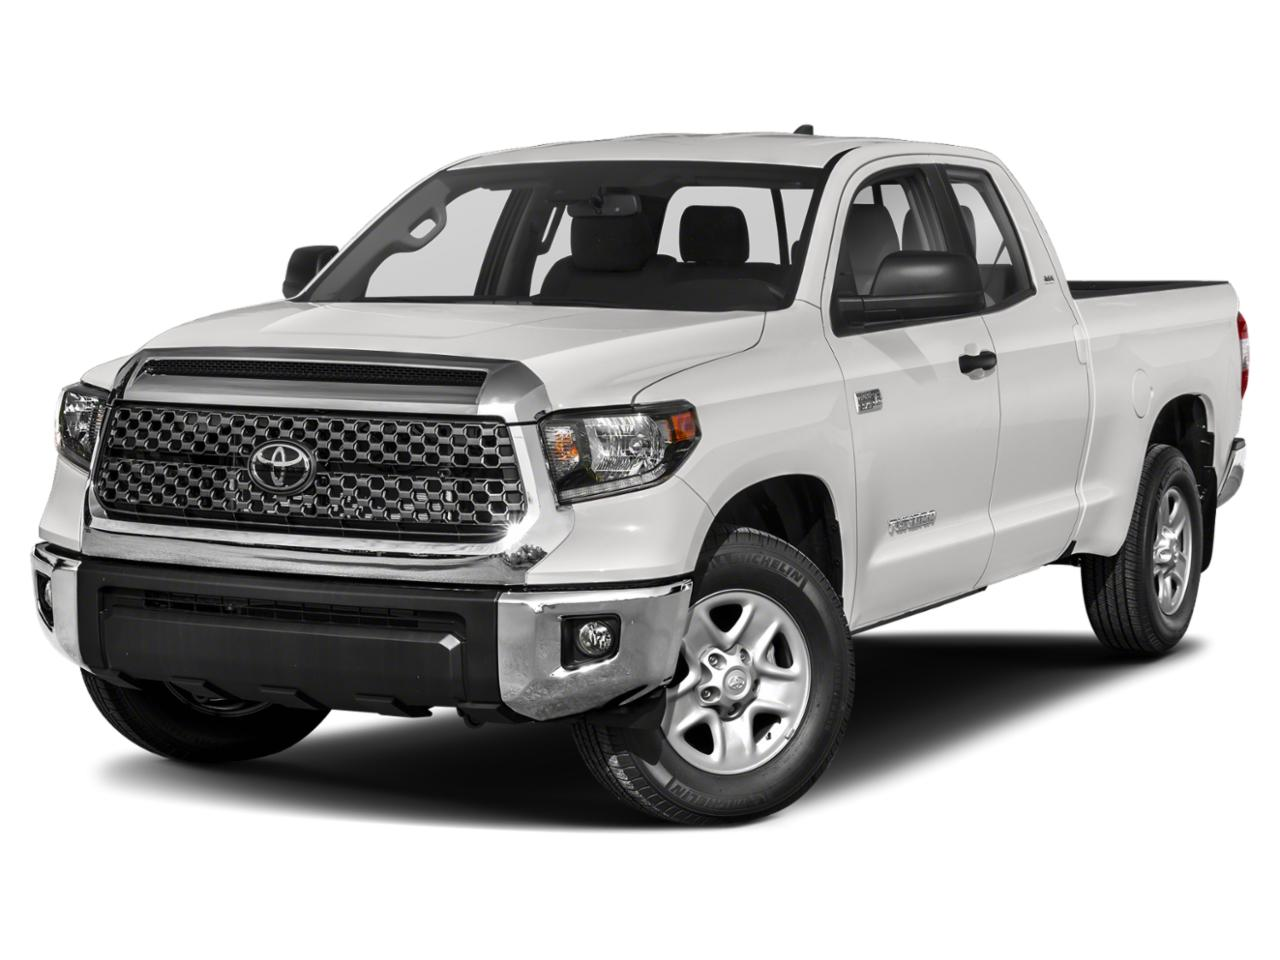 2019 Toyota Tundra 4WD Vehicle Photo in BEND, OR 97701-5133